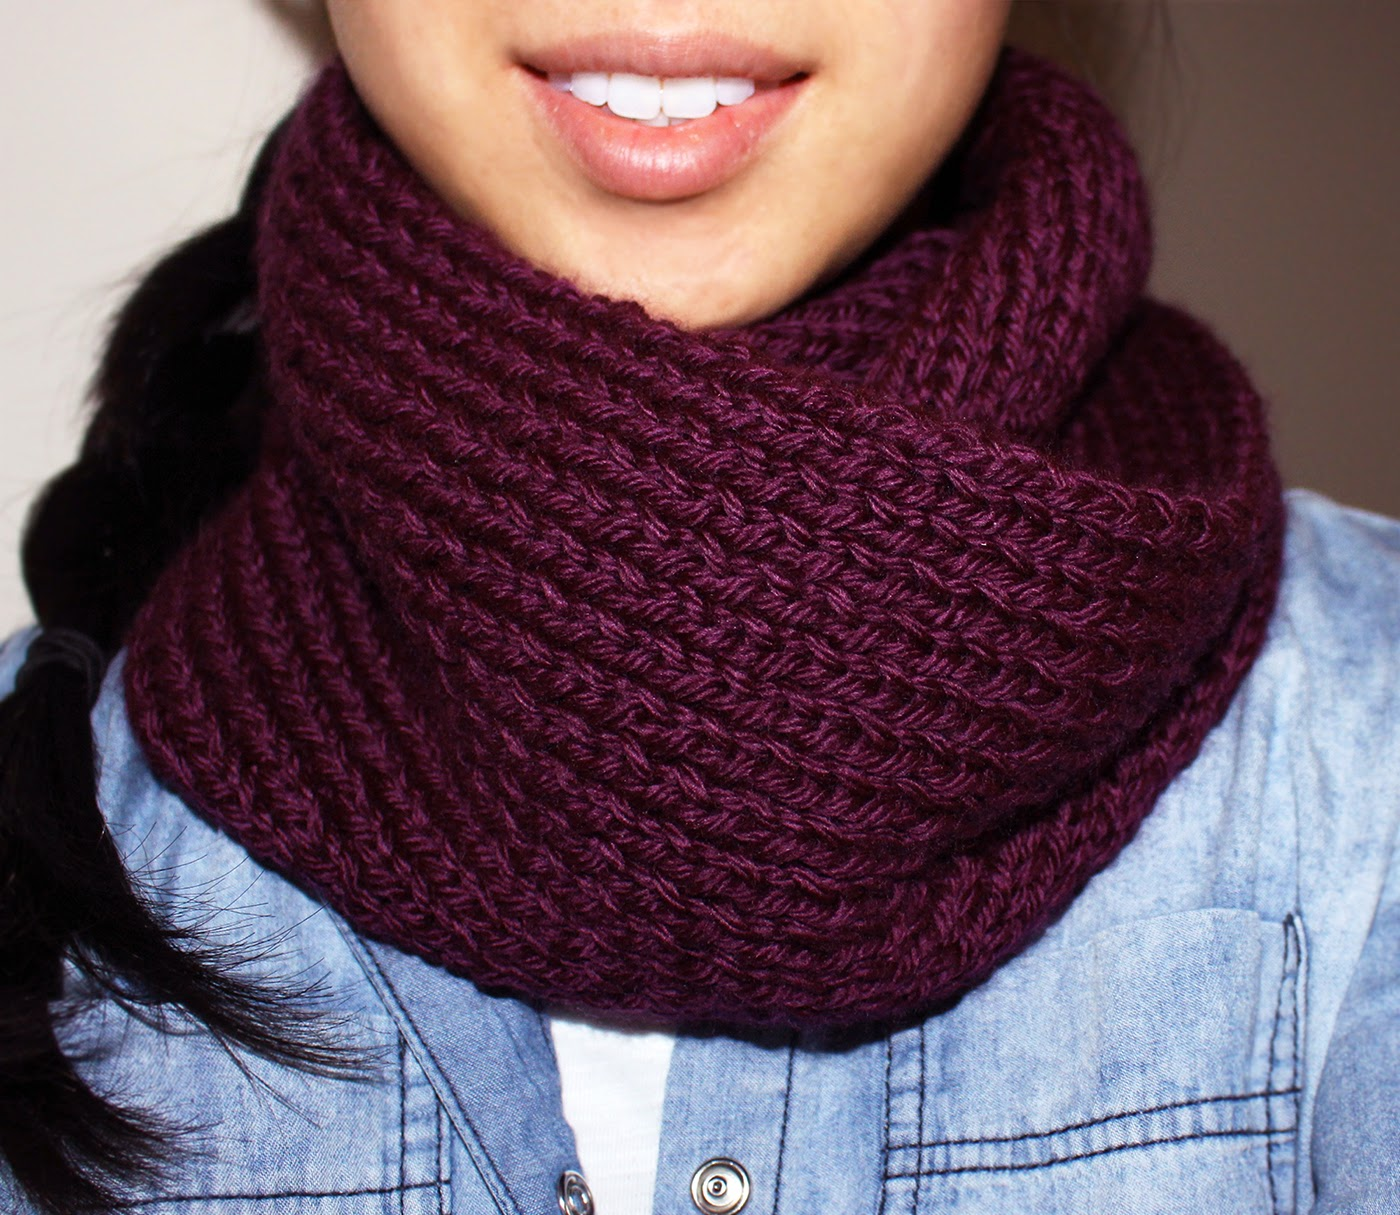 Simple Knitting Pattern For Infinity Scarf : Purllin: Acai Infinity Circle Scarf [free knitting pattern]